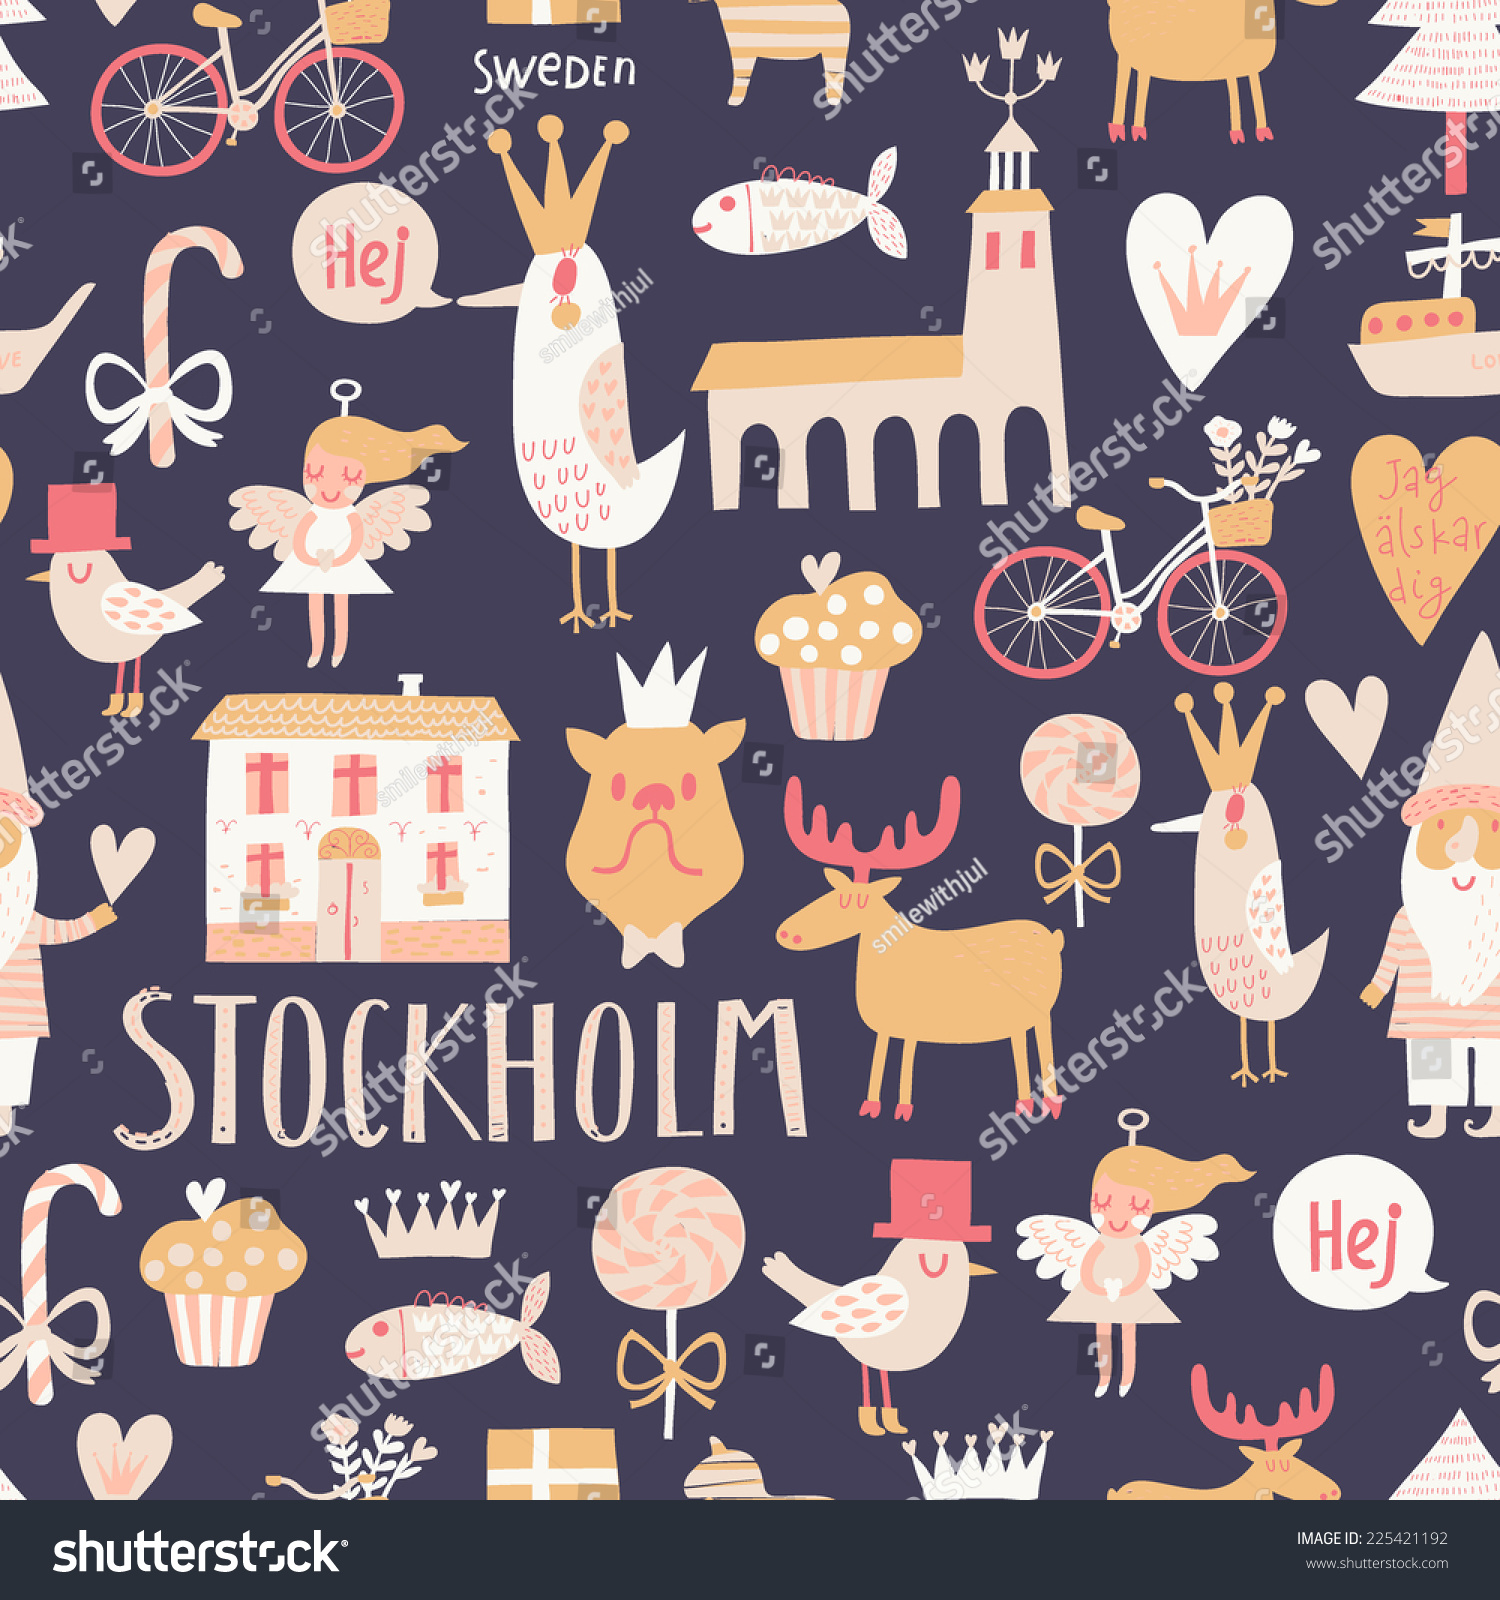 Stylish Stockholm concept seamless pattern in vector  House  church  gnome   birds. Stylish Stockholm Concept Seamless Pattern Vector Stock Vector